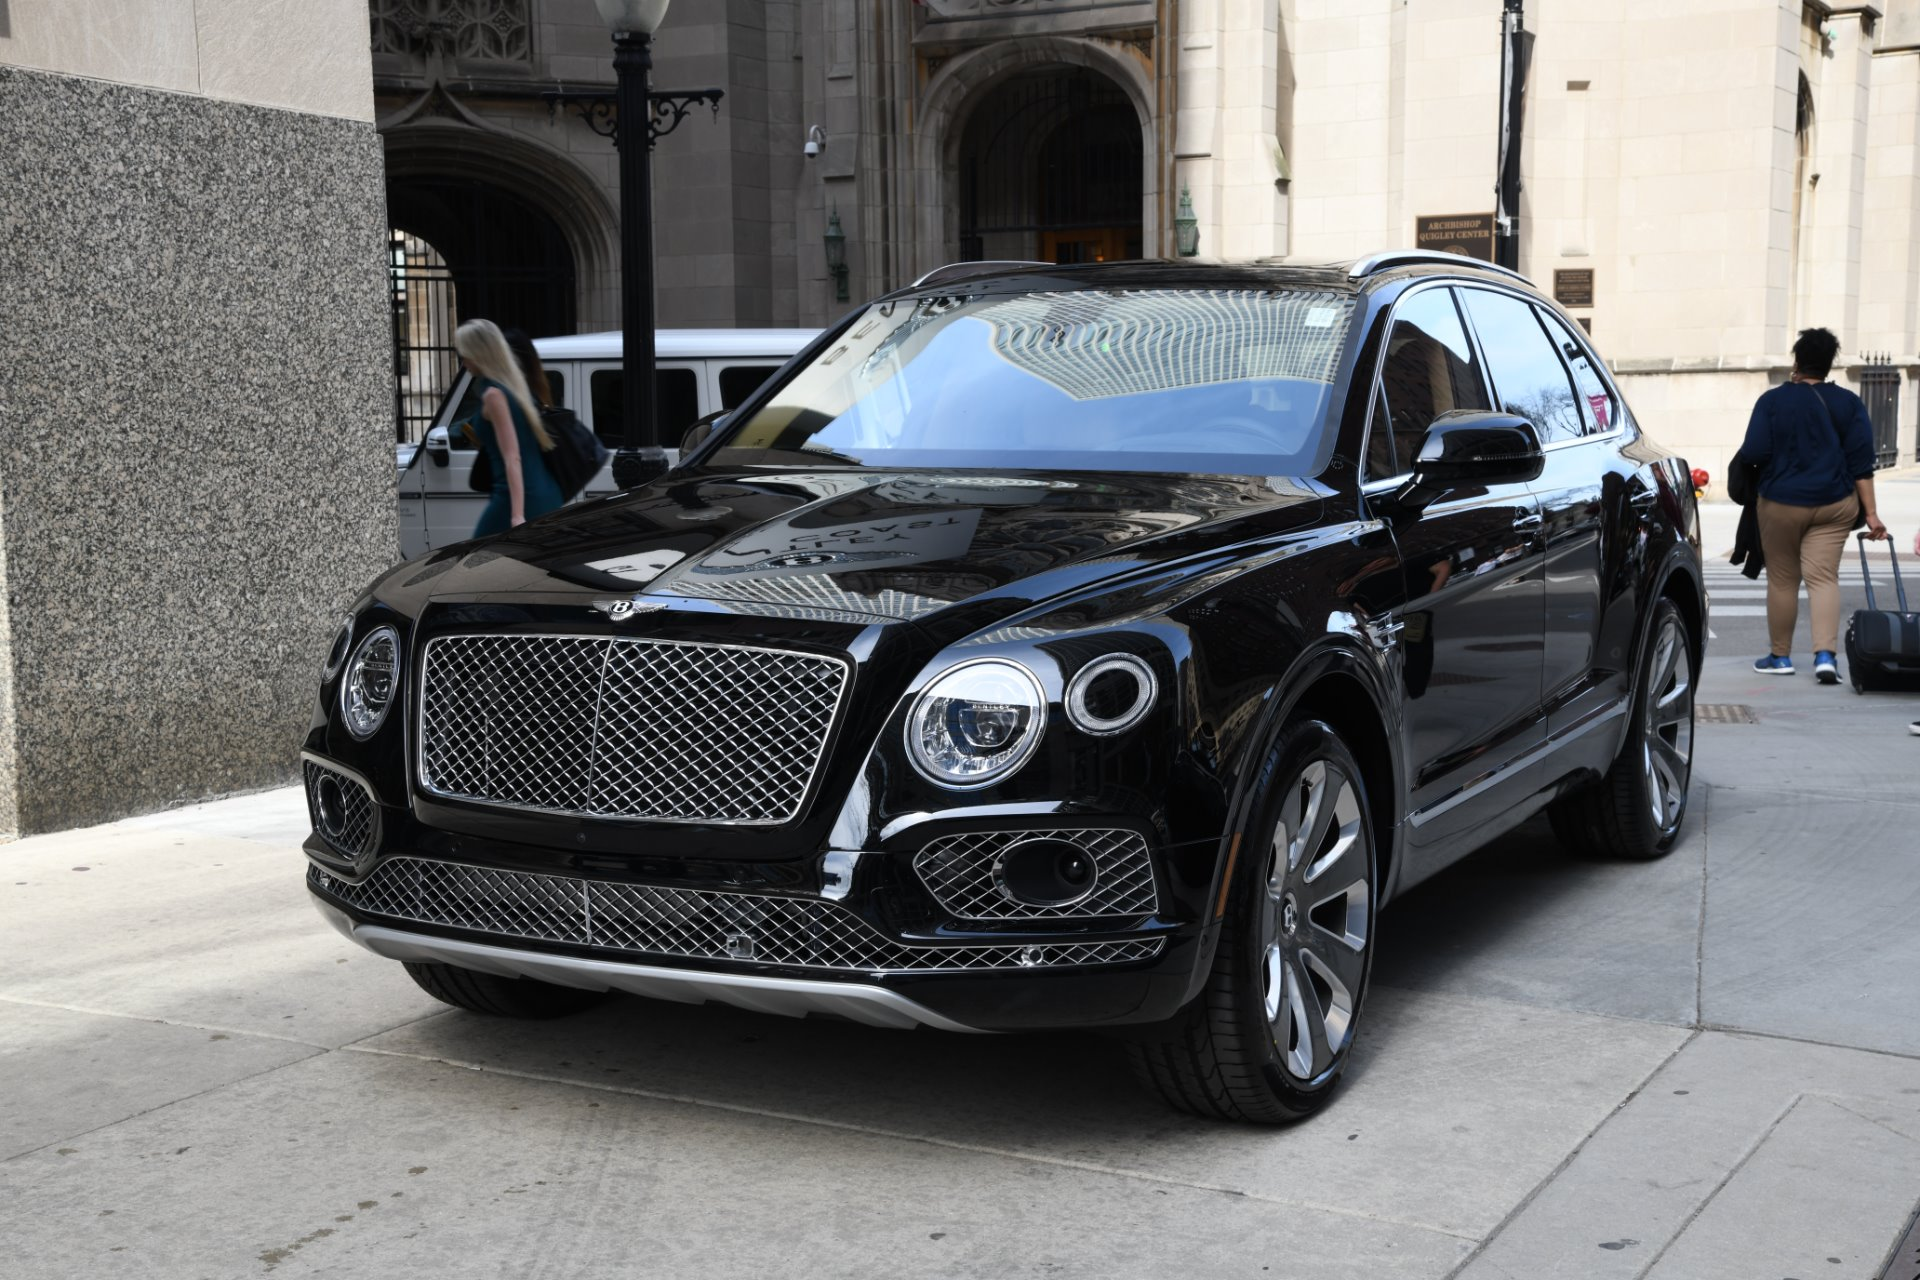 2018 Bentley Bentayga: Mulliner Version, Changes, PRice >> 2018 Bentley Bentayga Mulliner Edition Stock B1060 S For